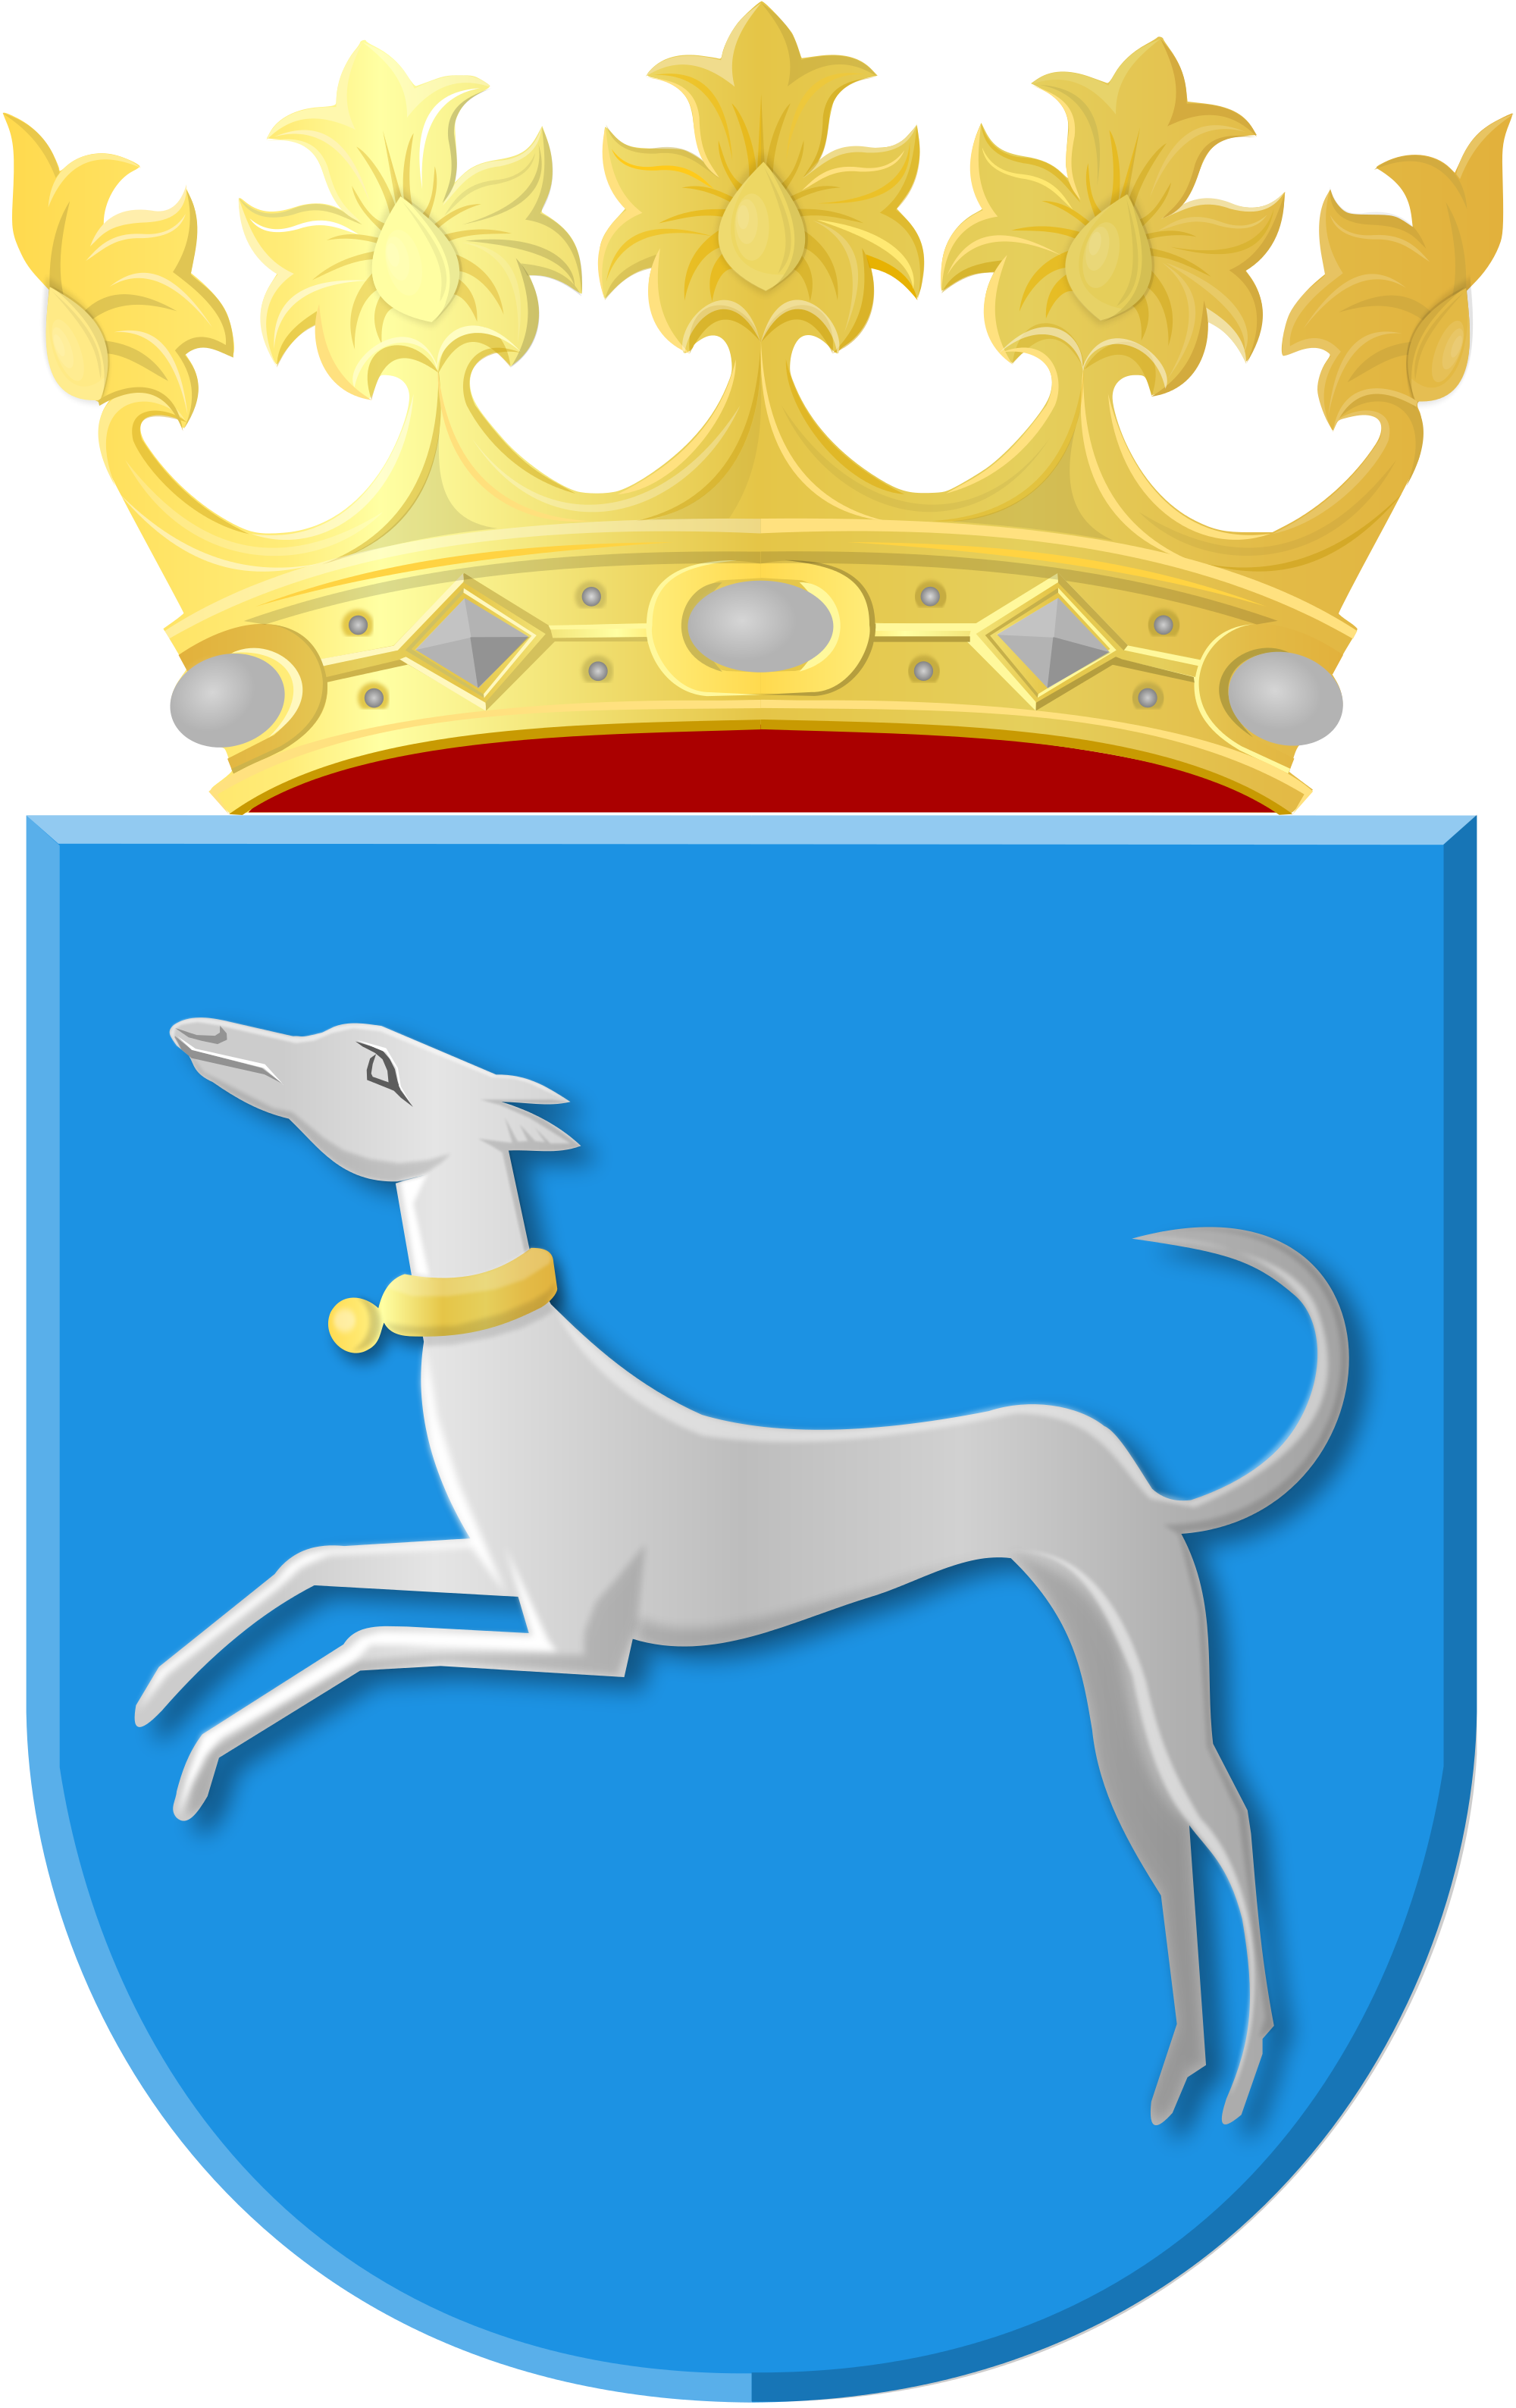 File:Coat of arms of Winterswijk.svg.